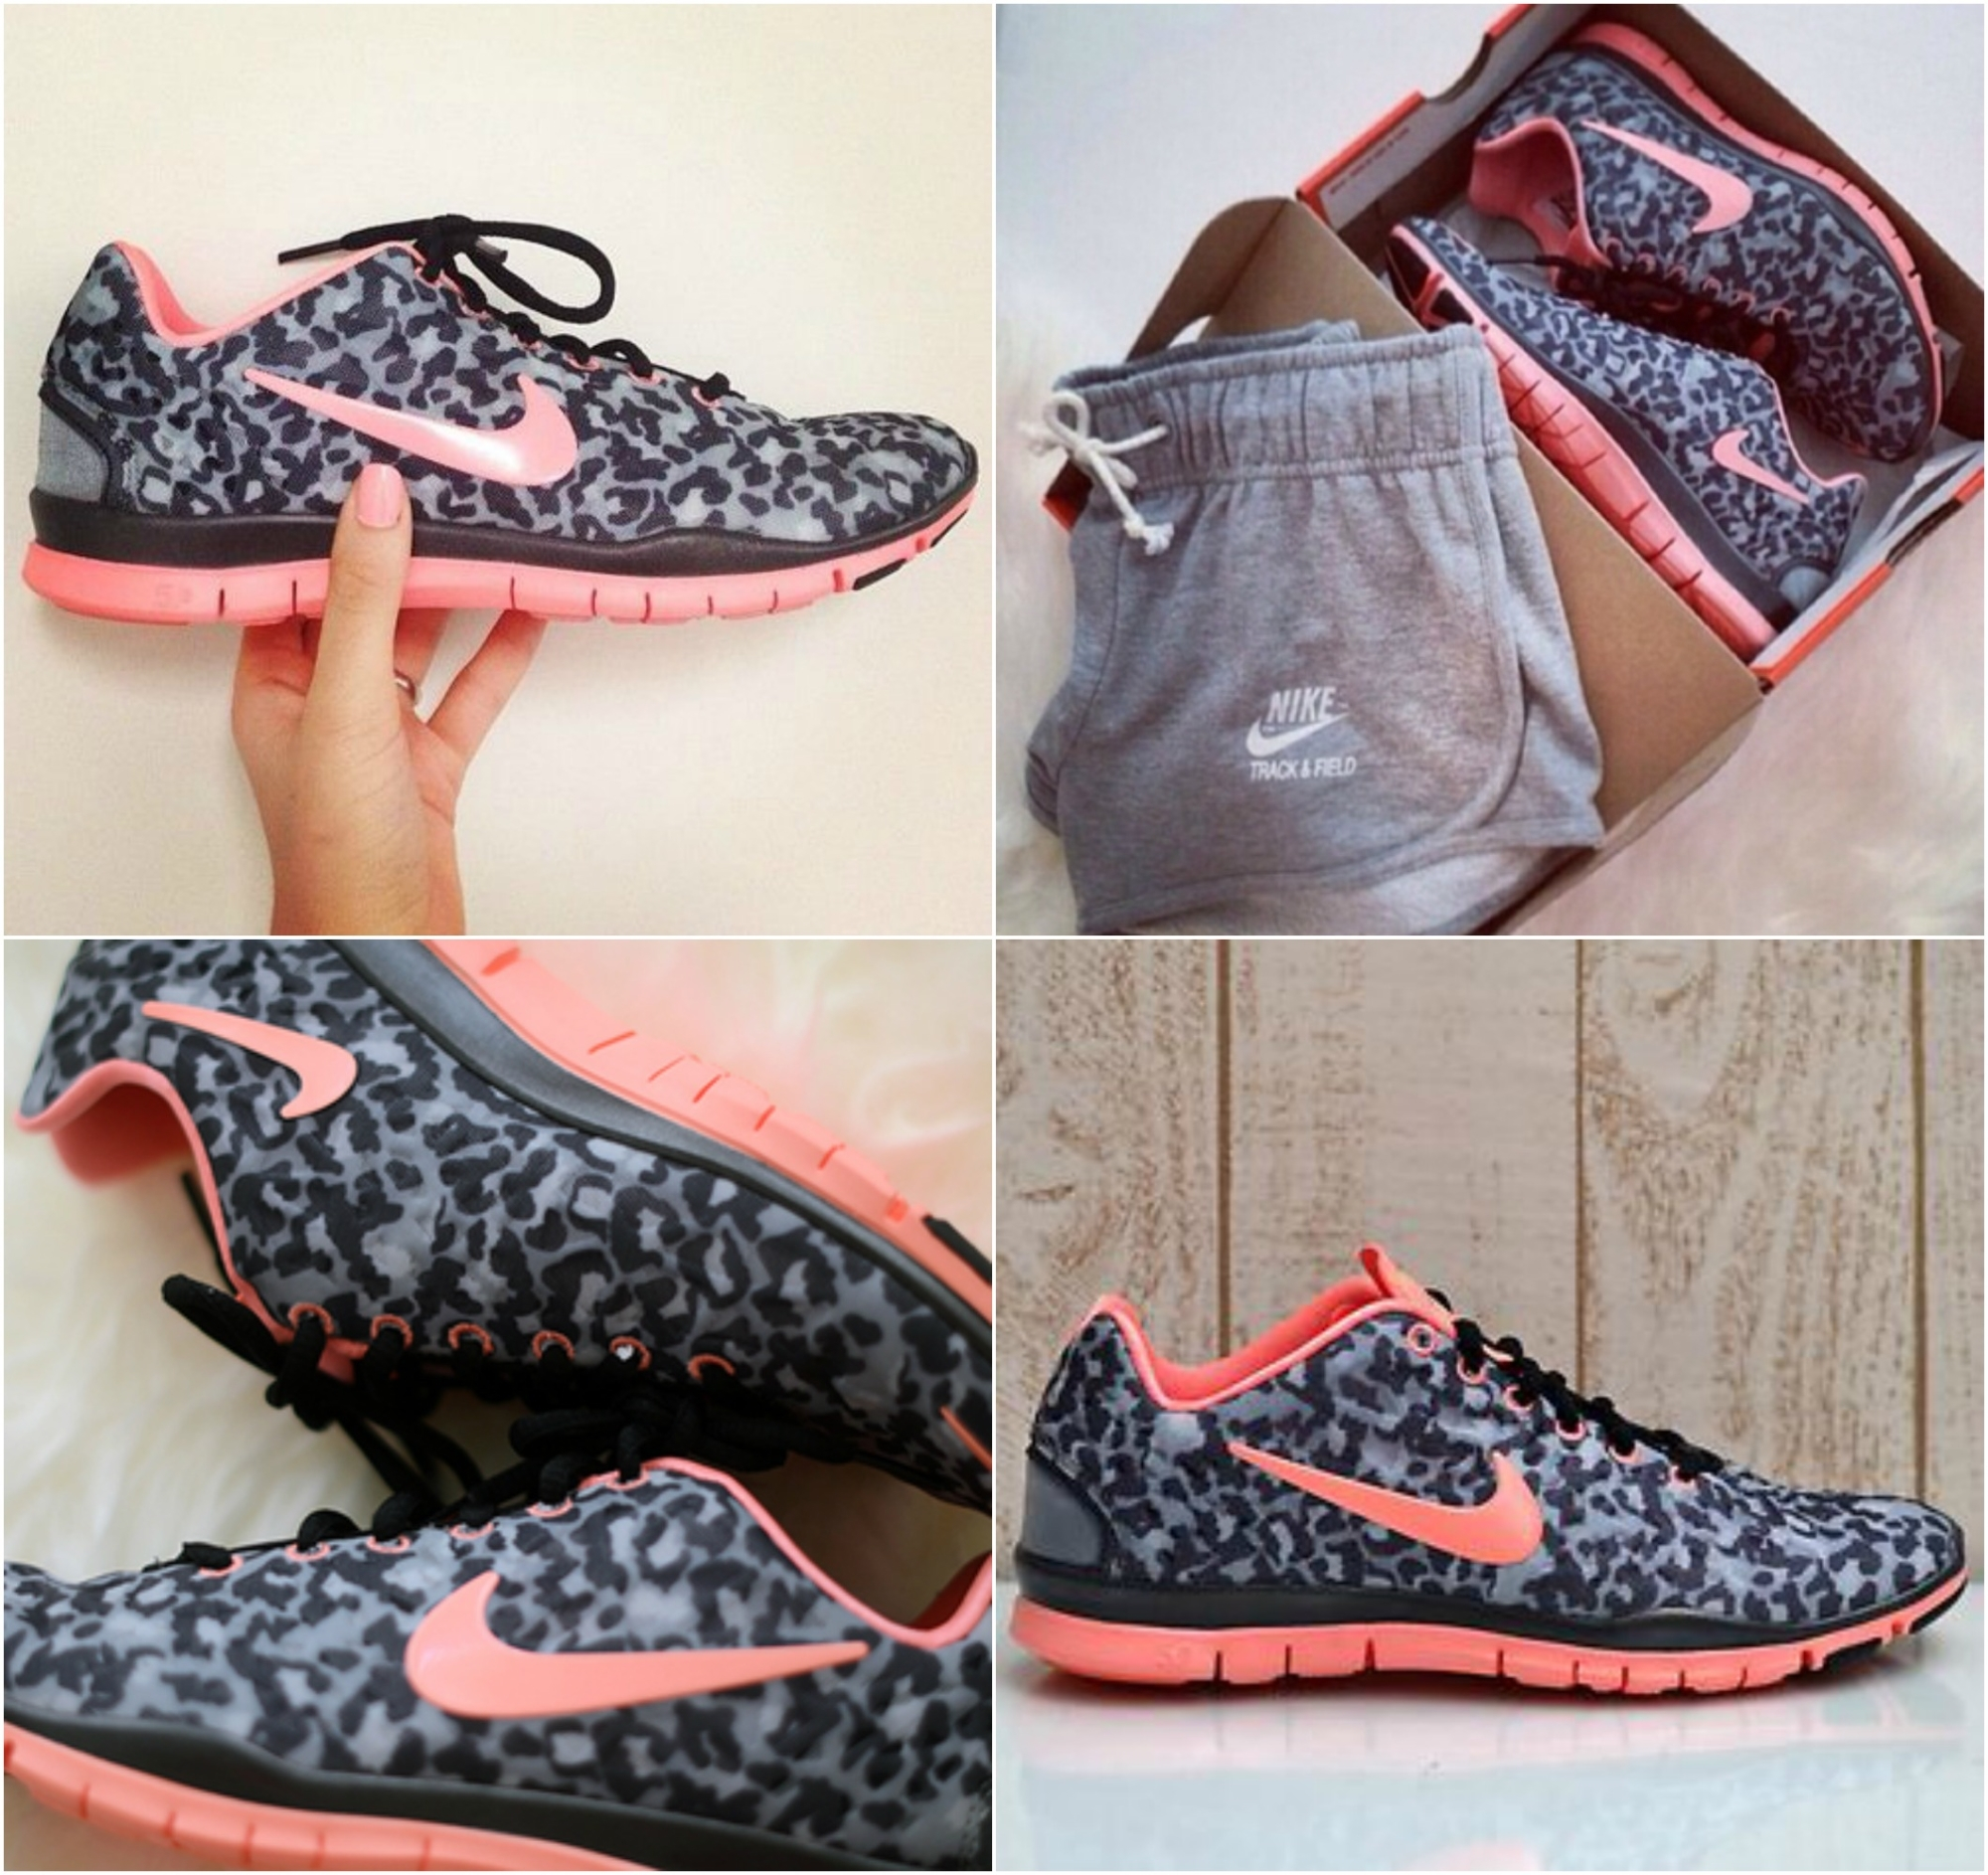 Nike tumblr background tvhw nu - Nike Leopard Skor